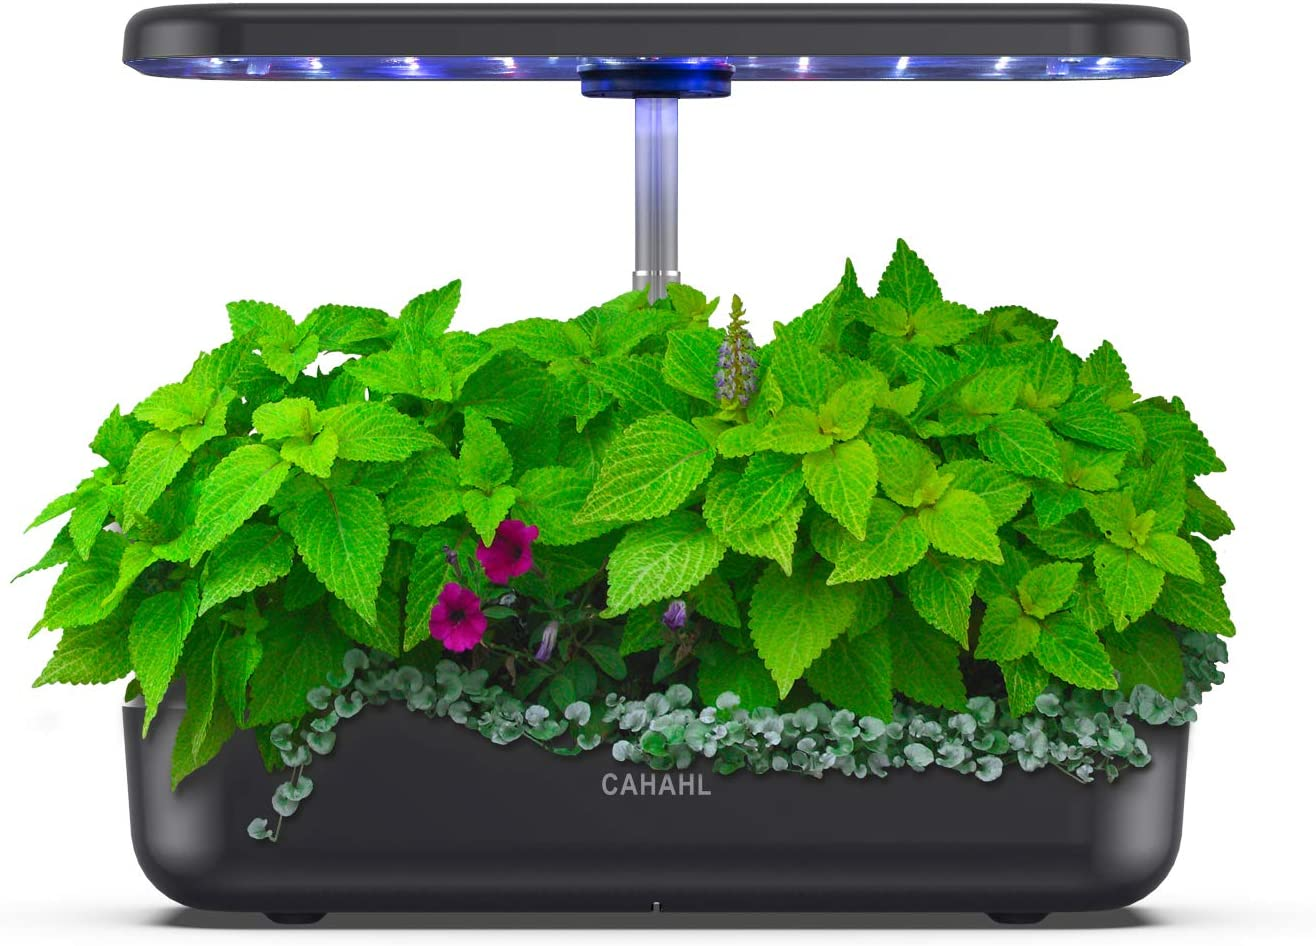 Indoor Hydroponic Garden 12Pods Hydroponics Growing System Indoor Herb Garden Kit with LED Grow Light, Smart Garden Planter for Home Kitchen, Height Adjustable(No Seeds)